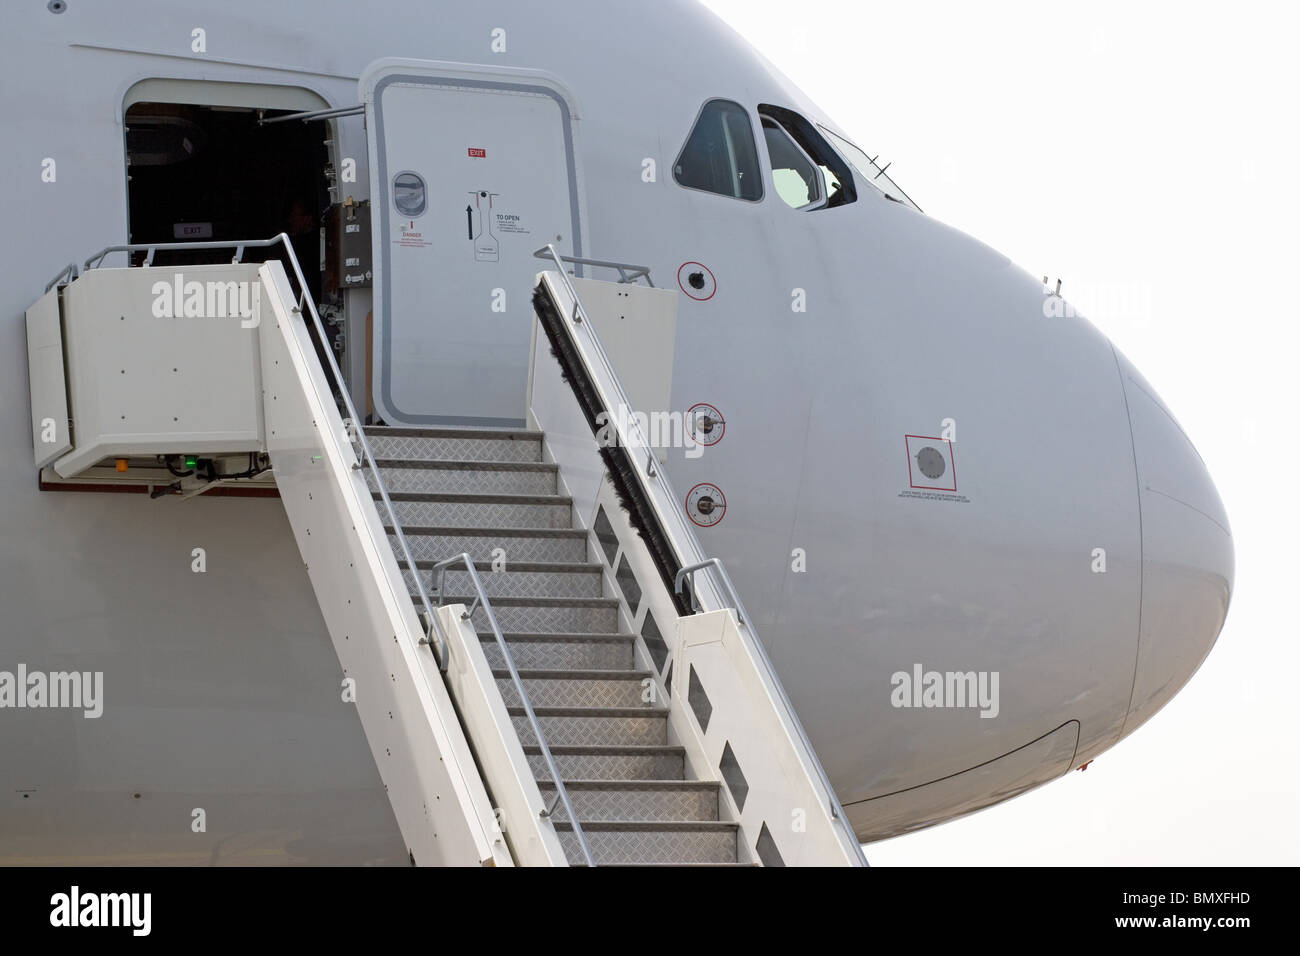 Commercial airplane - Stock Image